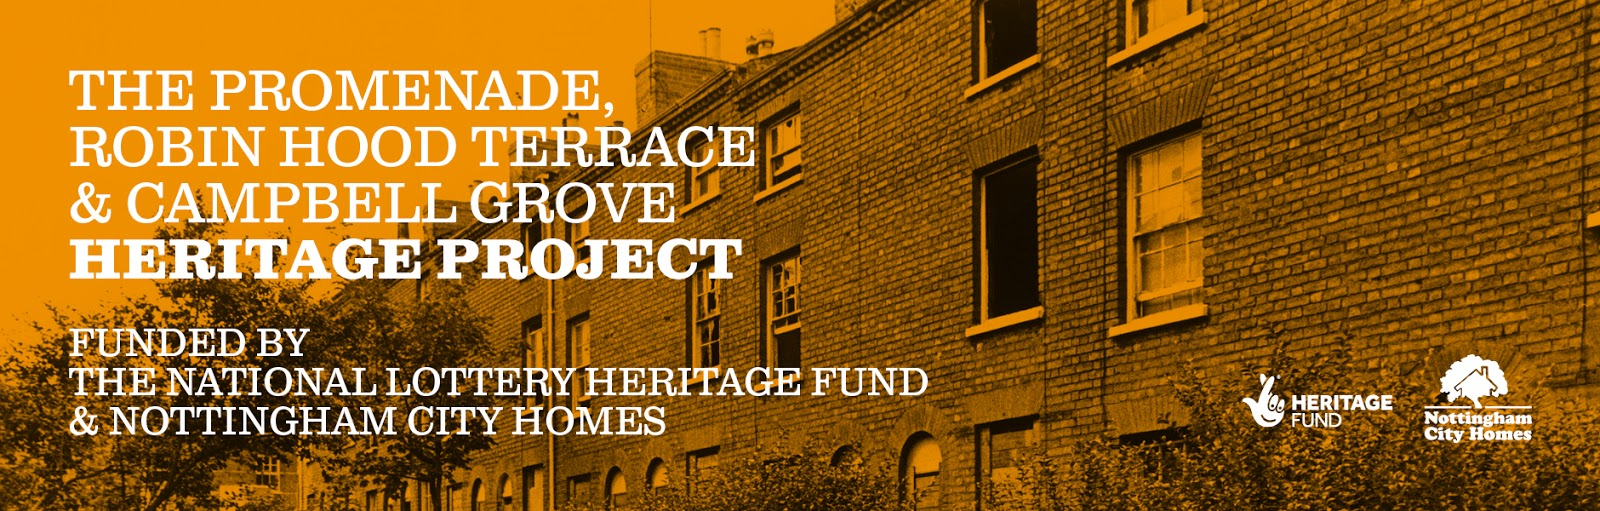 The Promenade Heritage Project